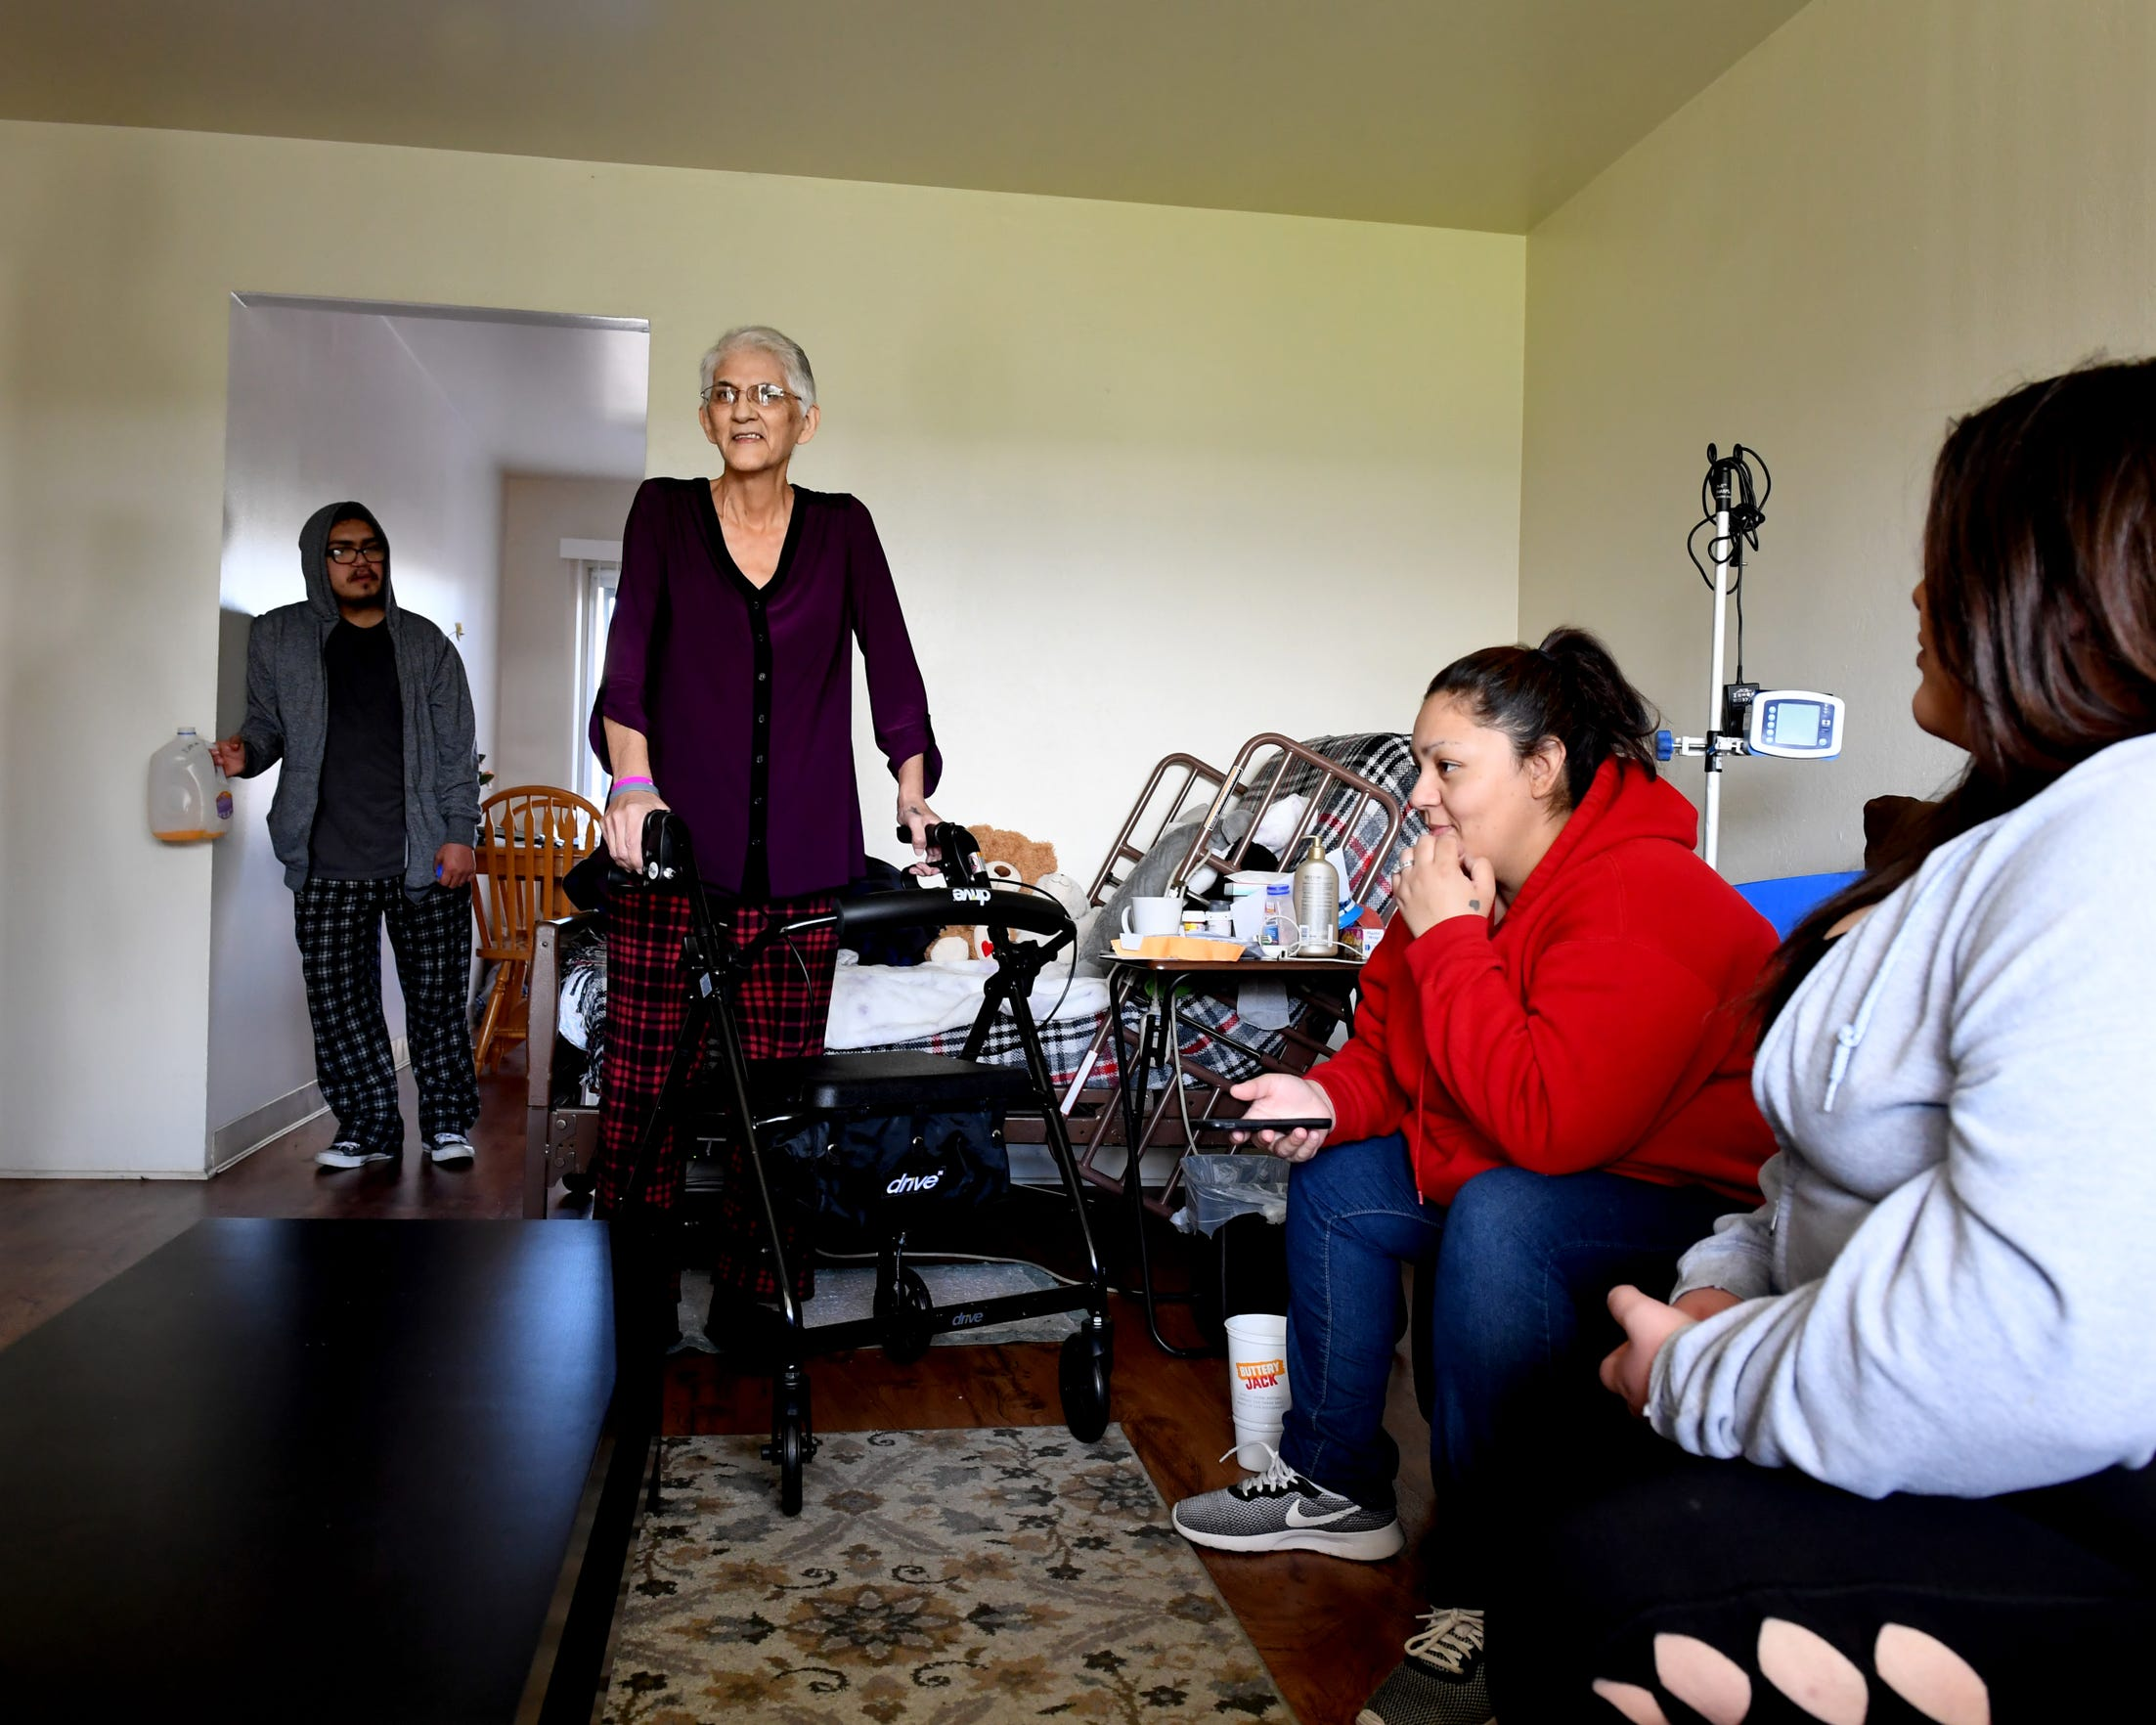 Gloria Torrez (standing) speaks with her family at her Salinas home in March 2019.